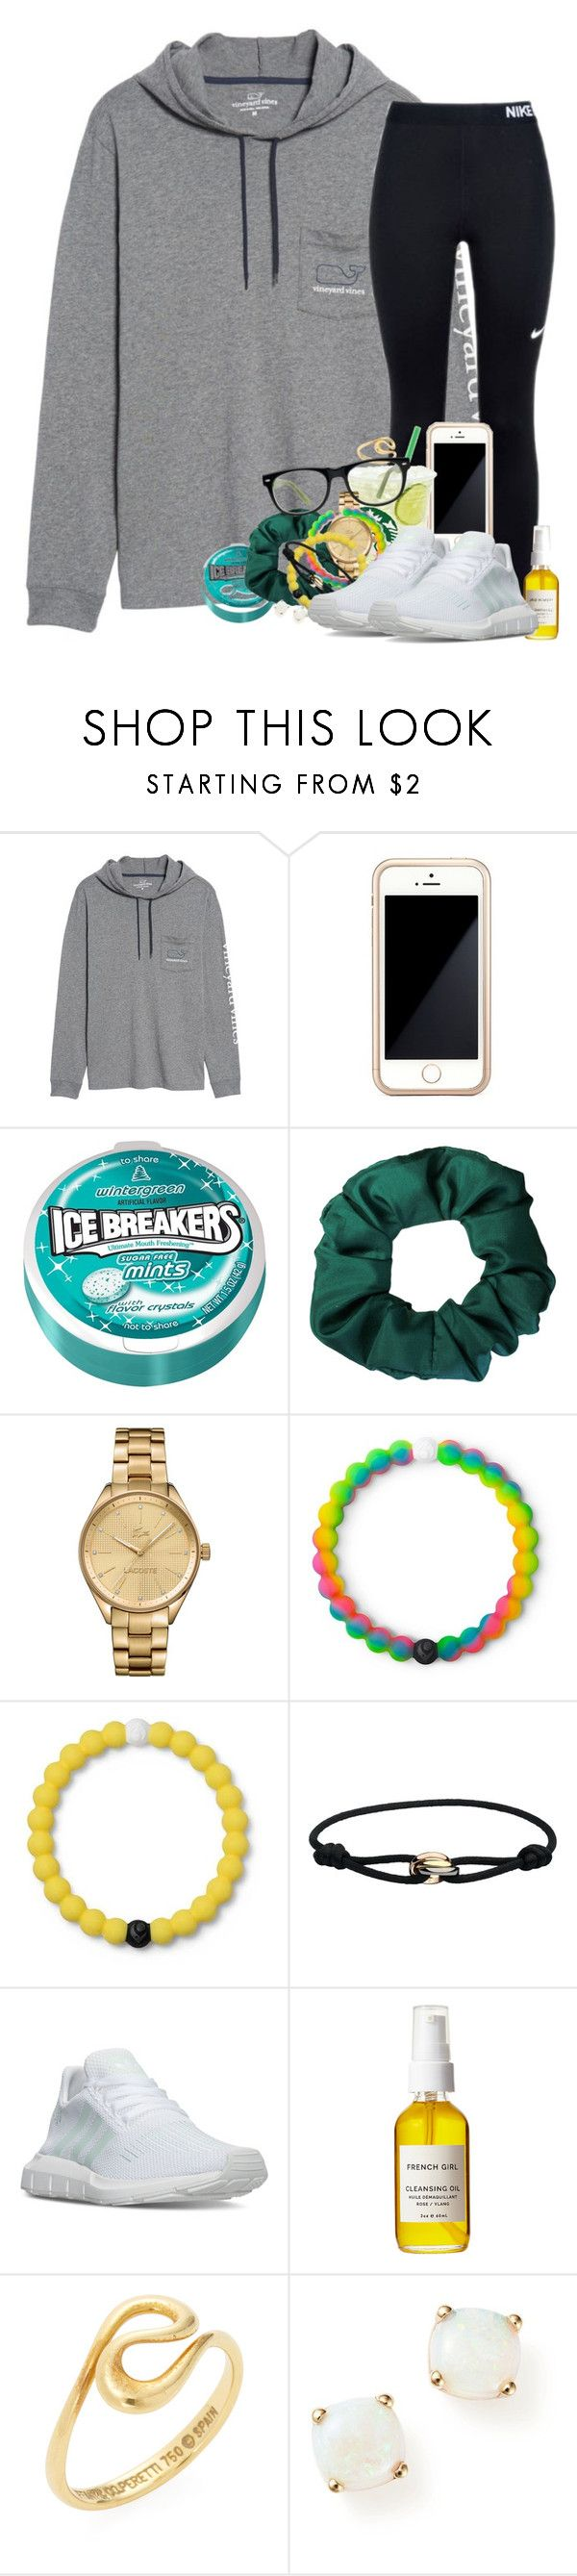 """"""""""" by southernstruttin ❤ liked on Polyvore featuring Vineyard Vines, NIKE, Squair, Lacoste, Lokai, Cartier, adidas, French Girl, Tiffany & Co. and Bloomingdale's"""